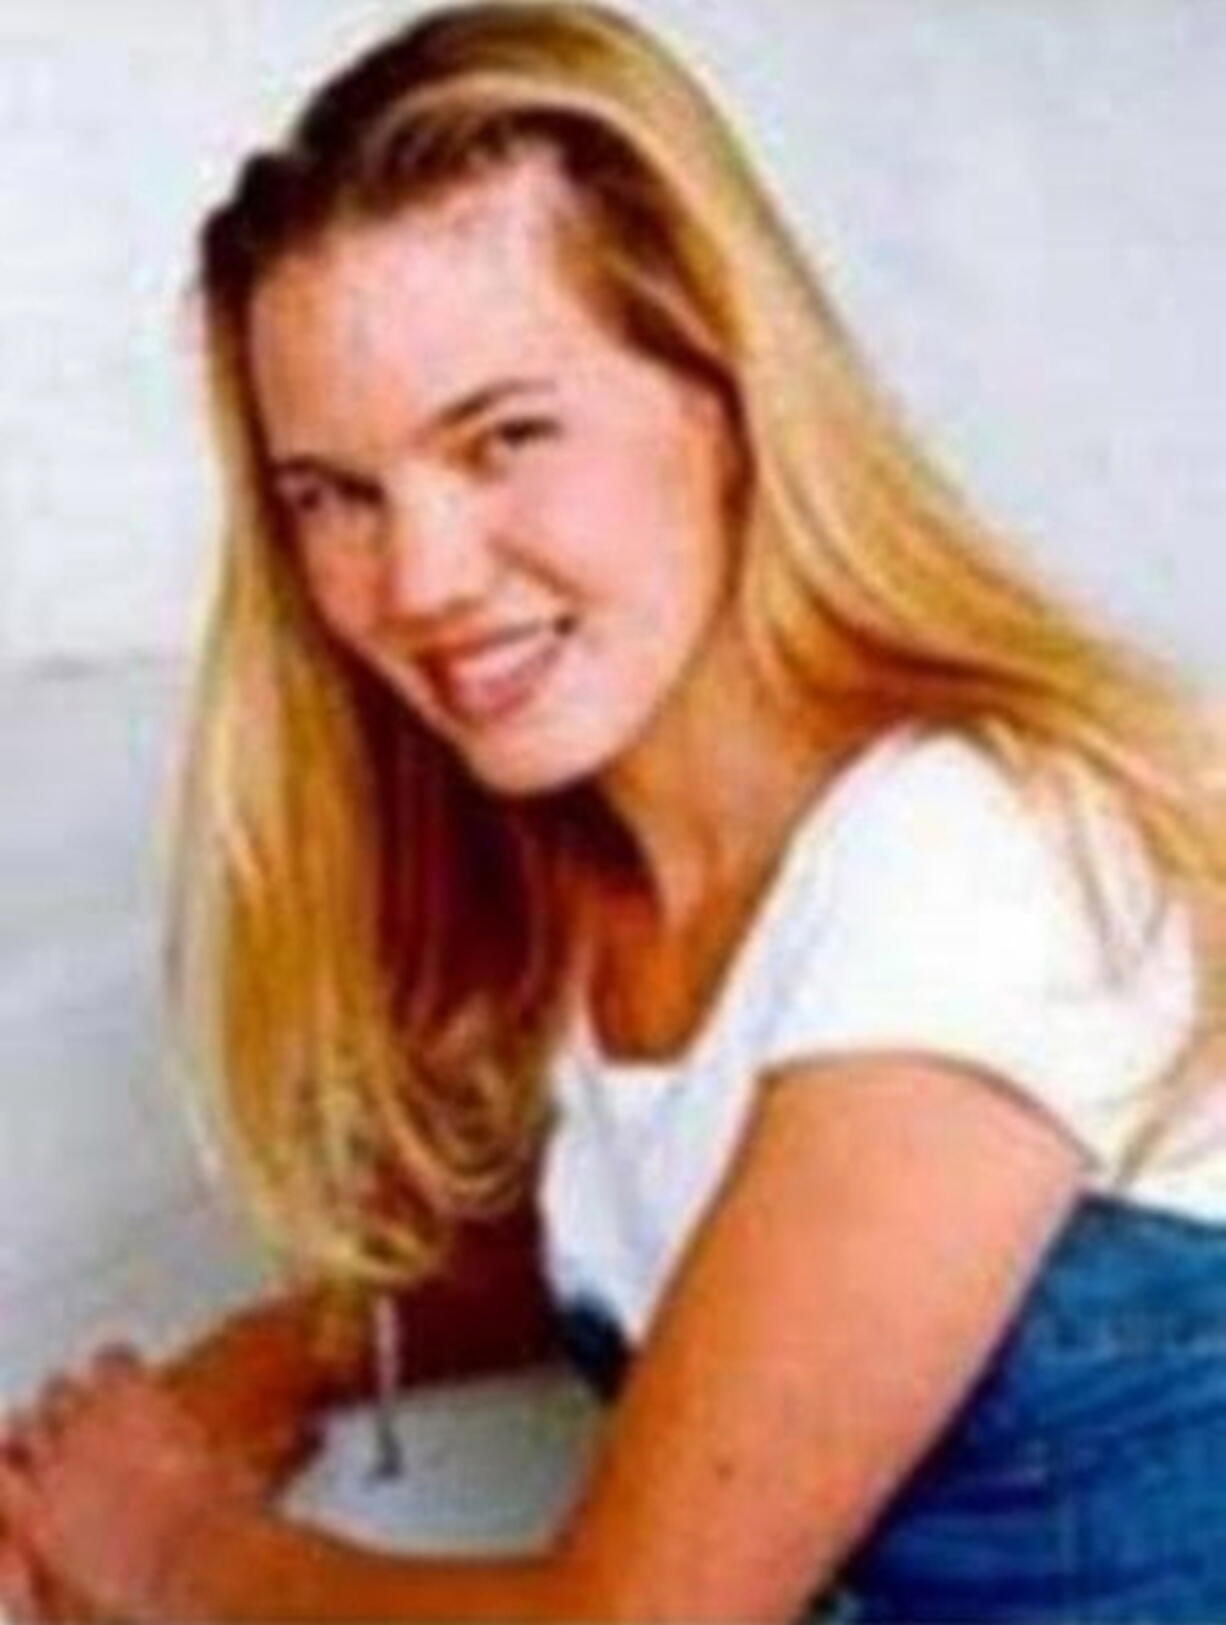 FILE - This undated photo released by the FBI shows Kristin Smart, the California Polytechnic State University, San Luis Obispo student who disappeared in 1996. The San Luis Obispo County district attorney has charged a former student, Paul Flores, with murder in her killing, and his father, Ruben Flores with helping hide her body.